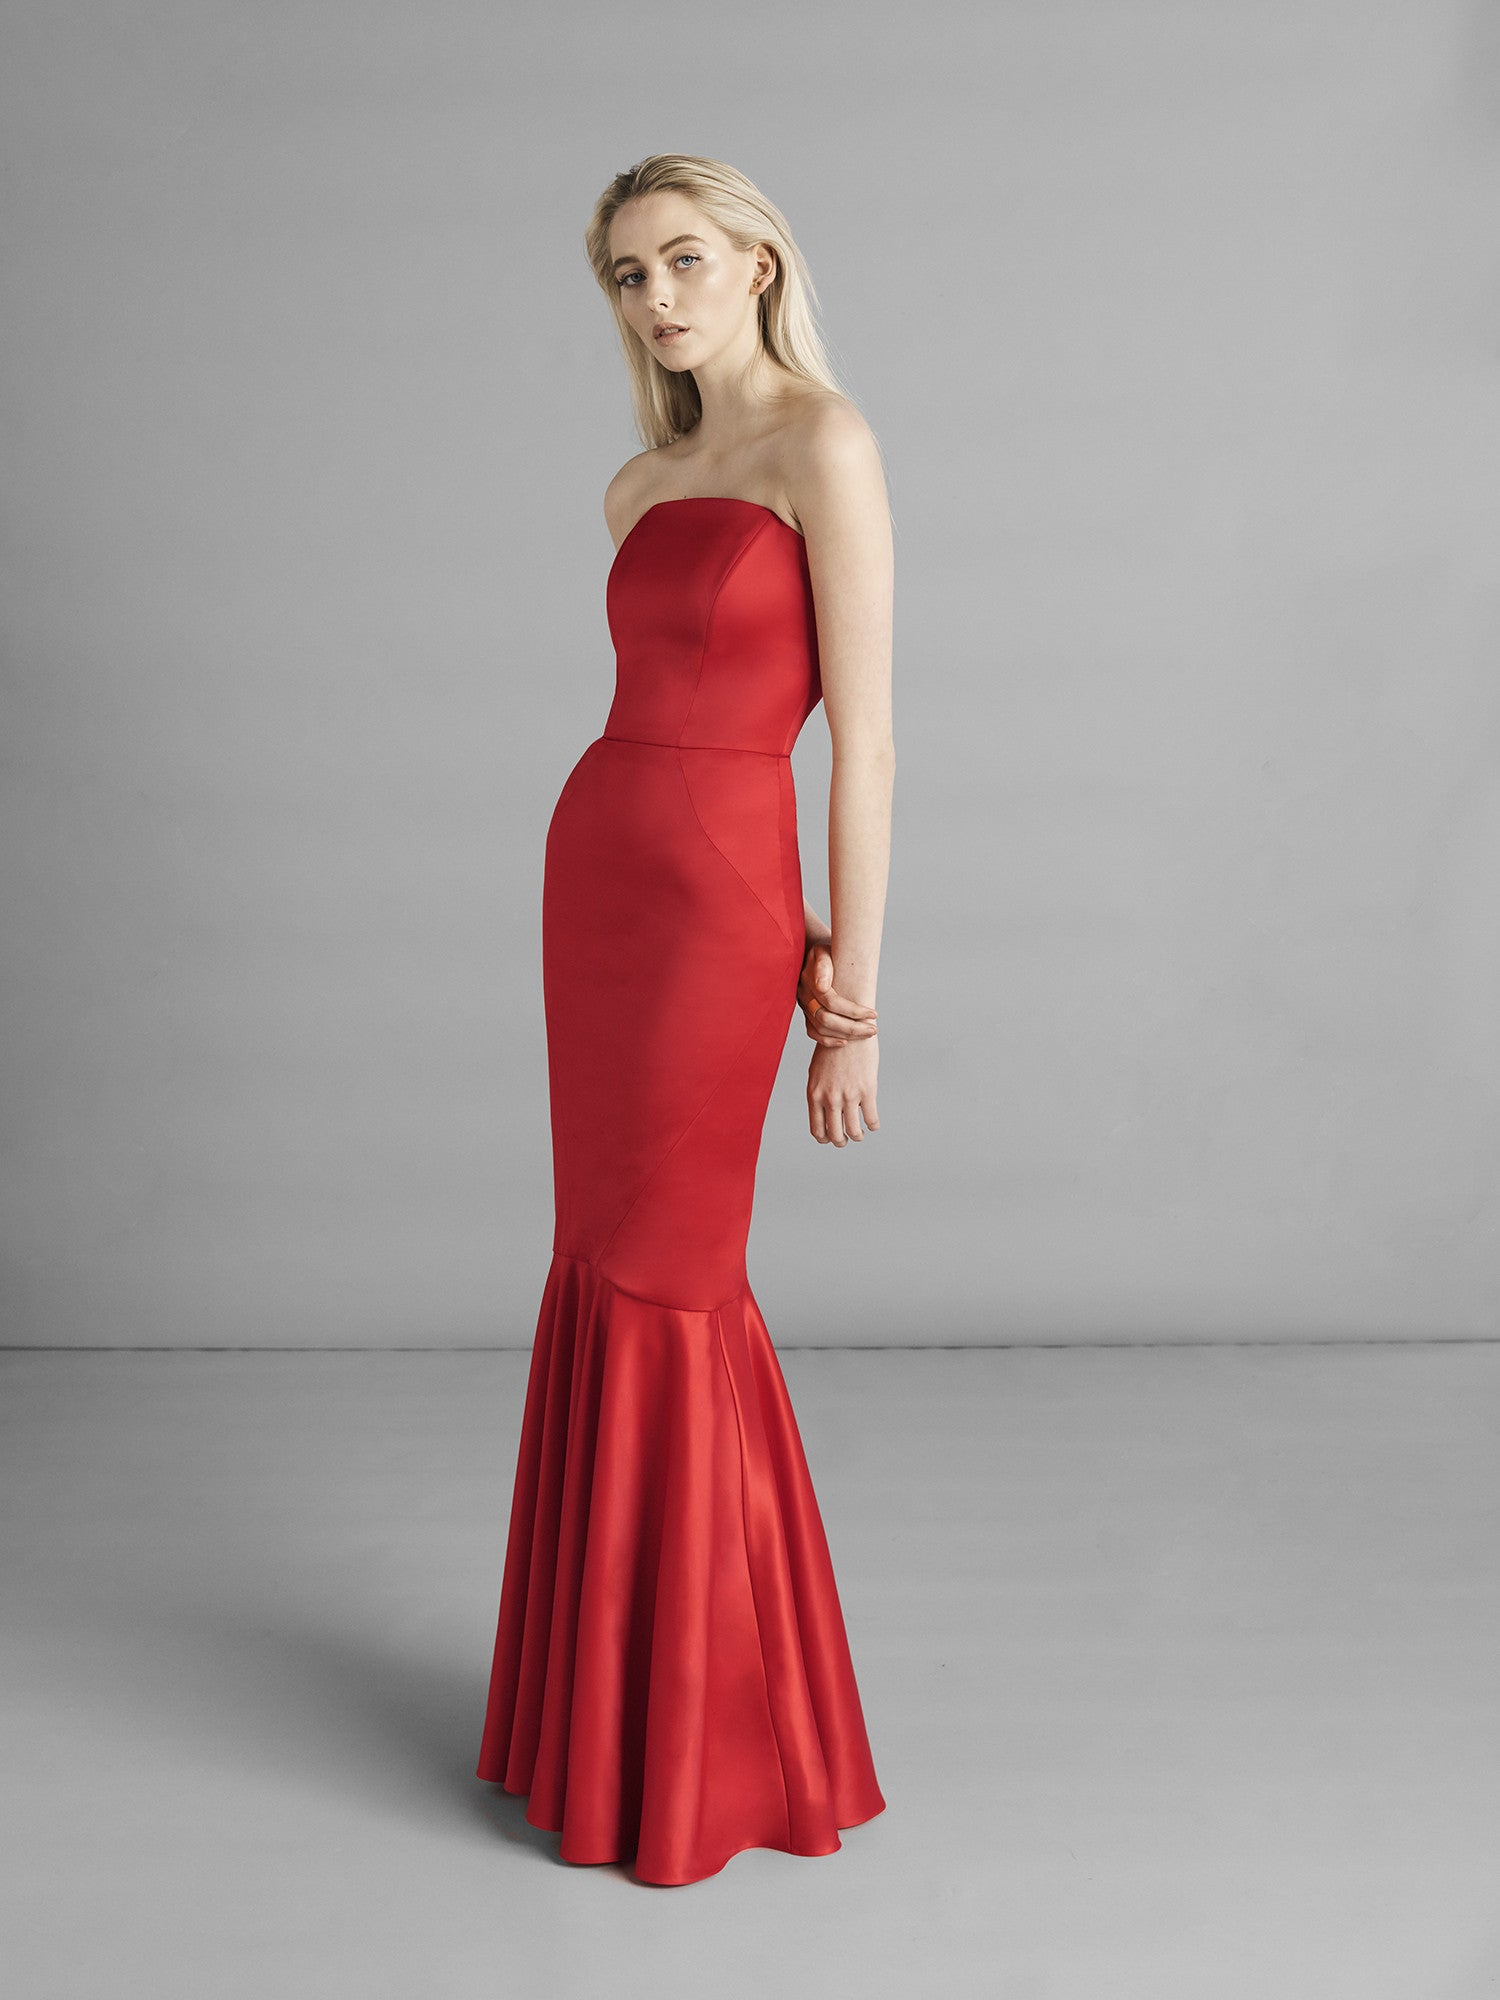 SARAH BOND - One Night In Vienna - Valie Siren Dress